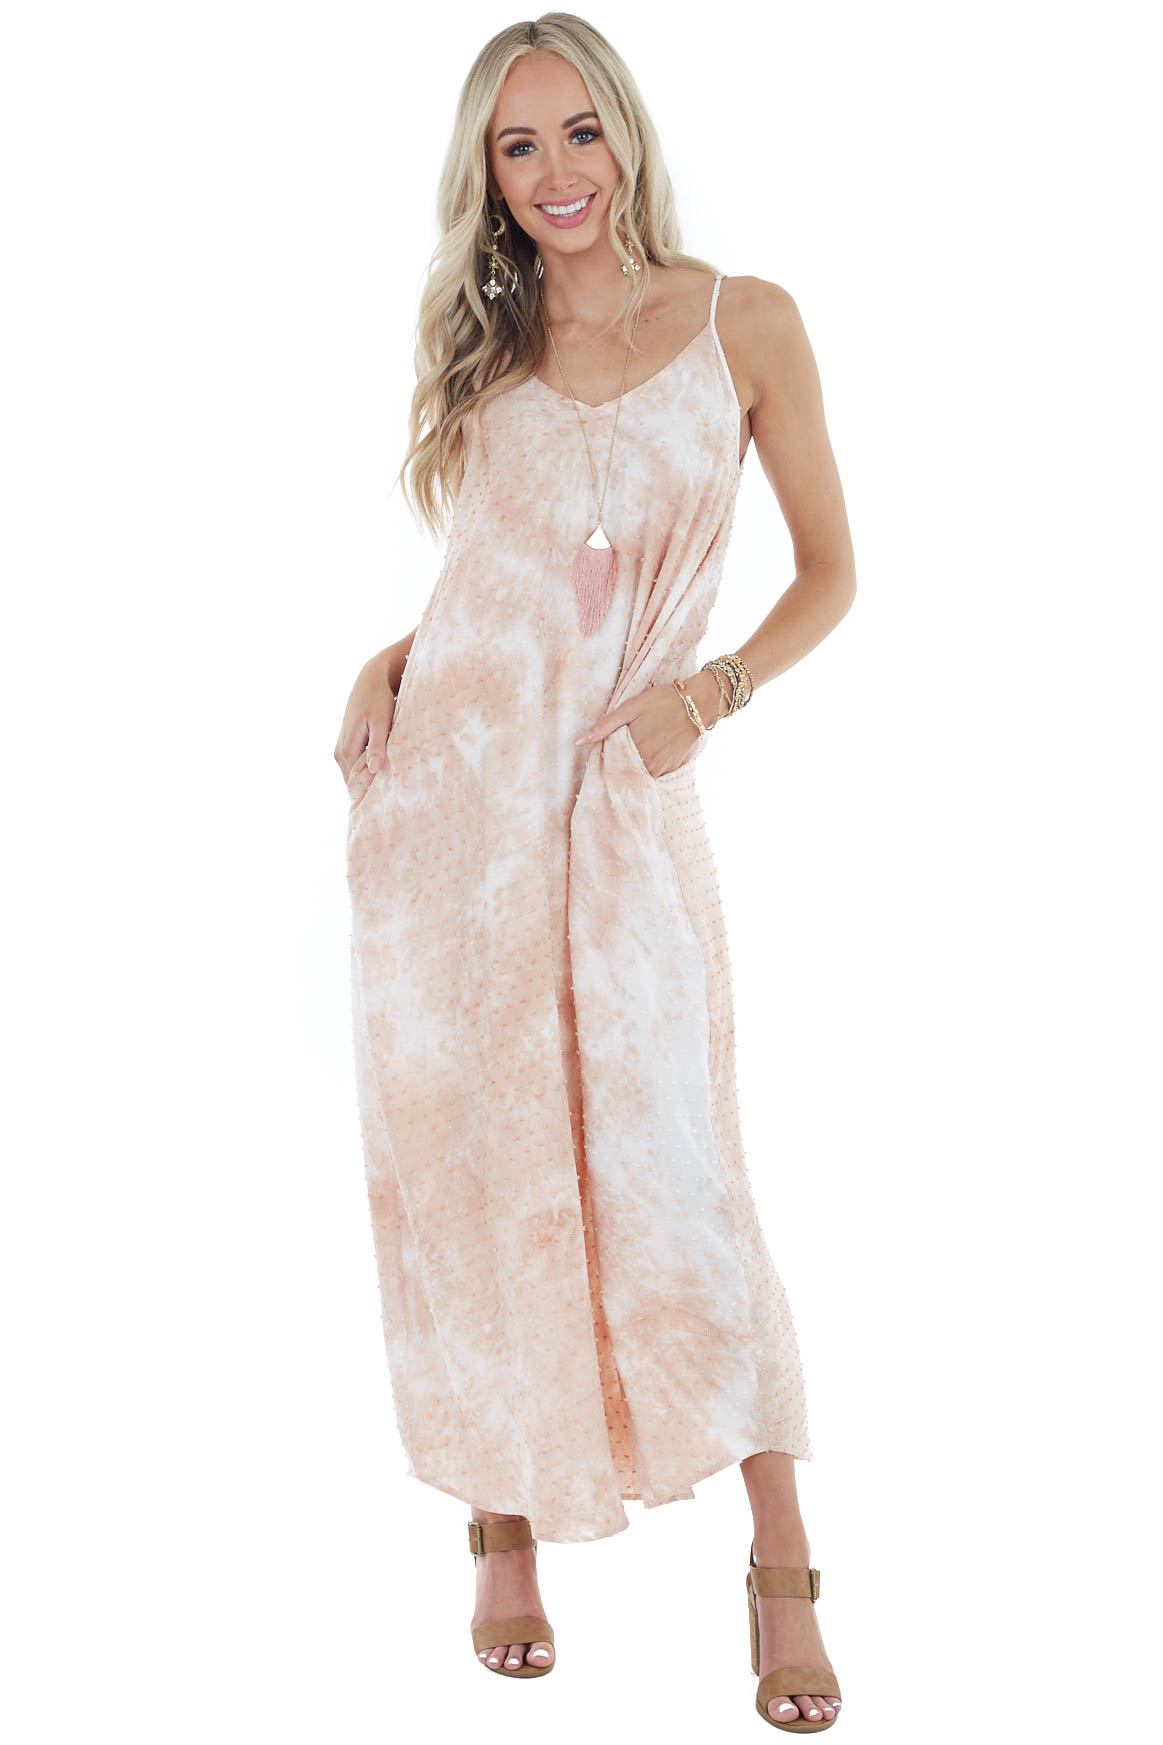 Dusty Peach Tie Dye Sleeveless Maxi Dress with Pockets